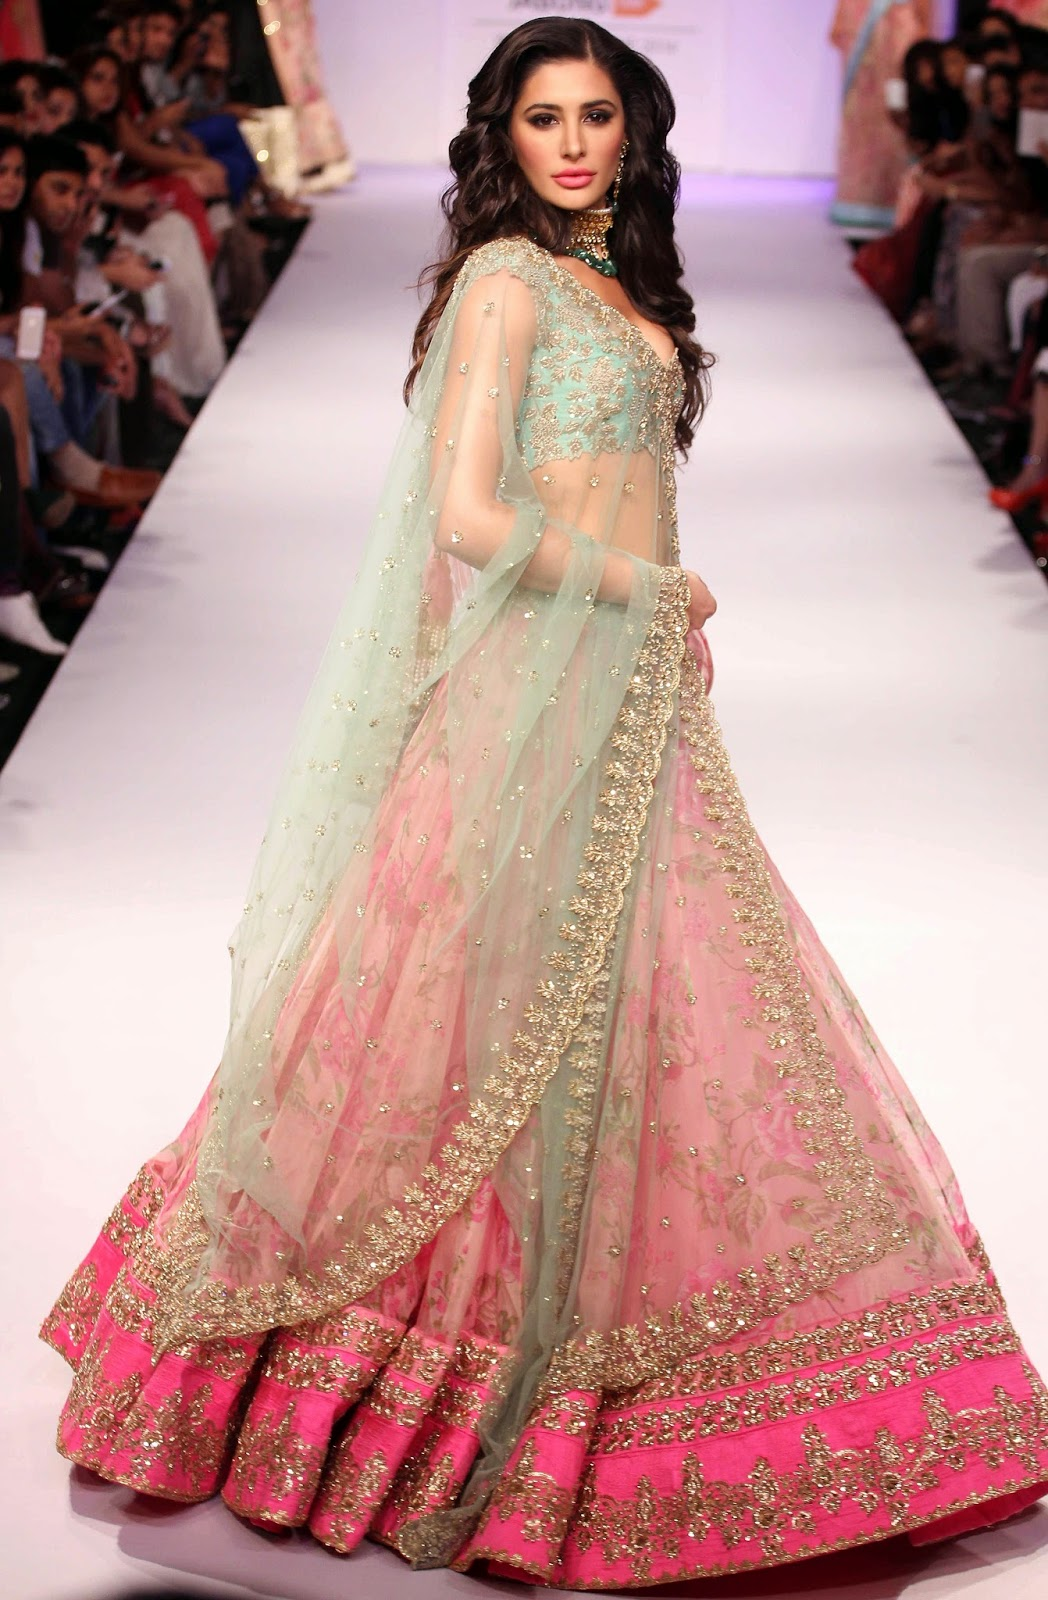 Nargis Fakhri Photos in Lehenga Choli at Lakme Fashion Week Winter ...